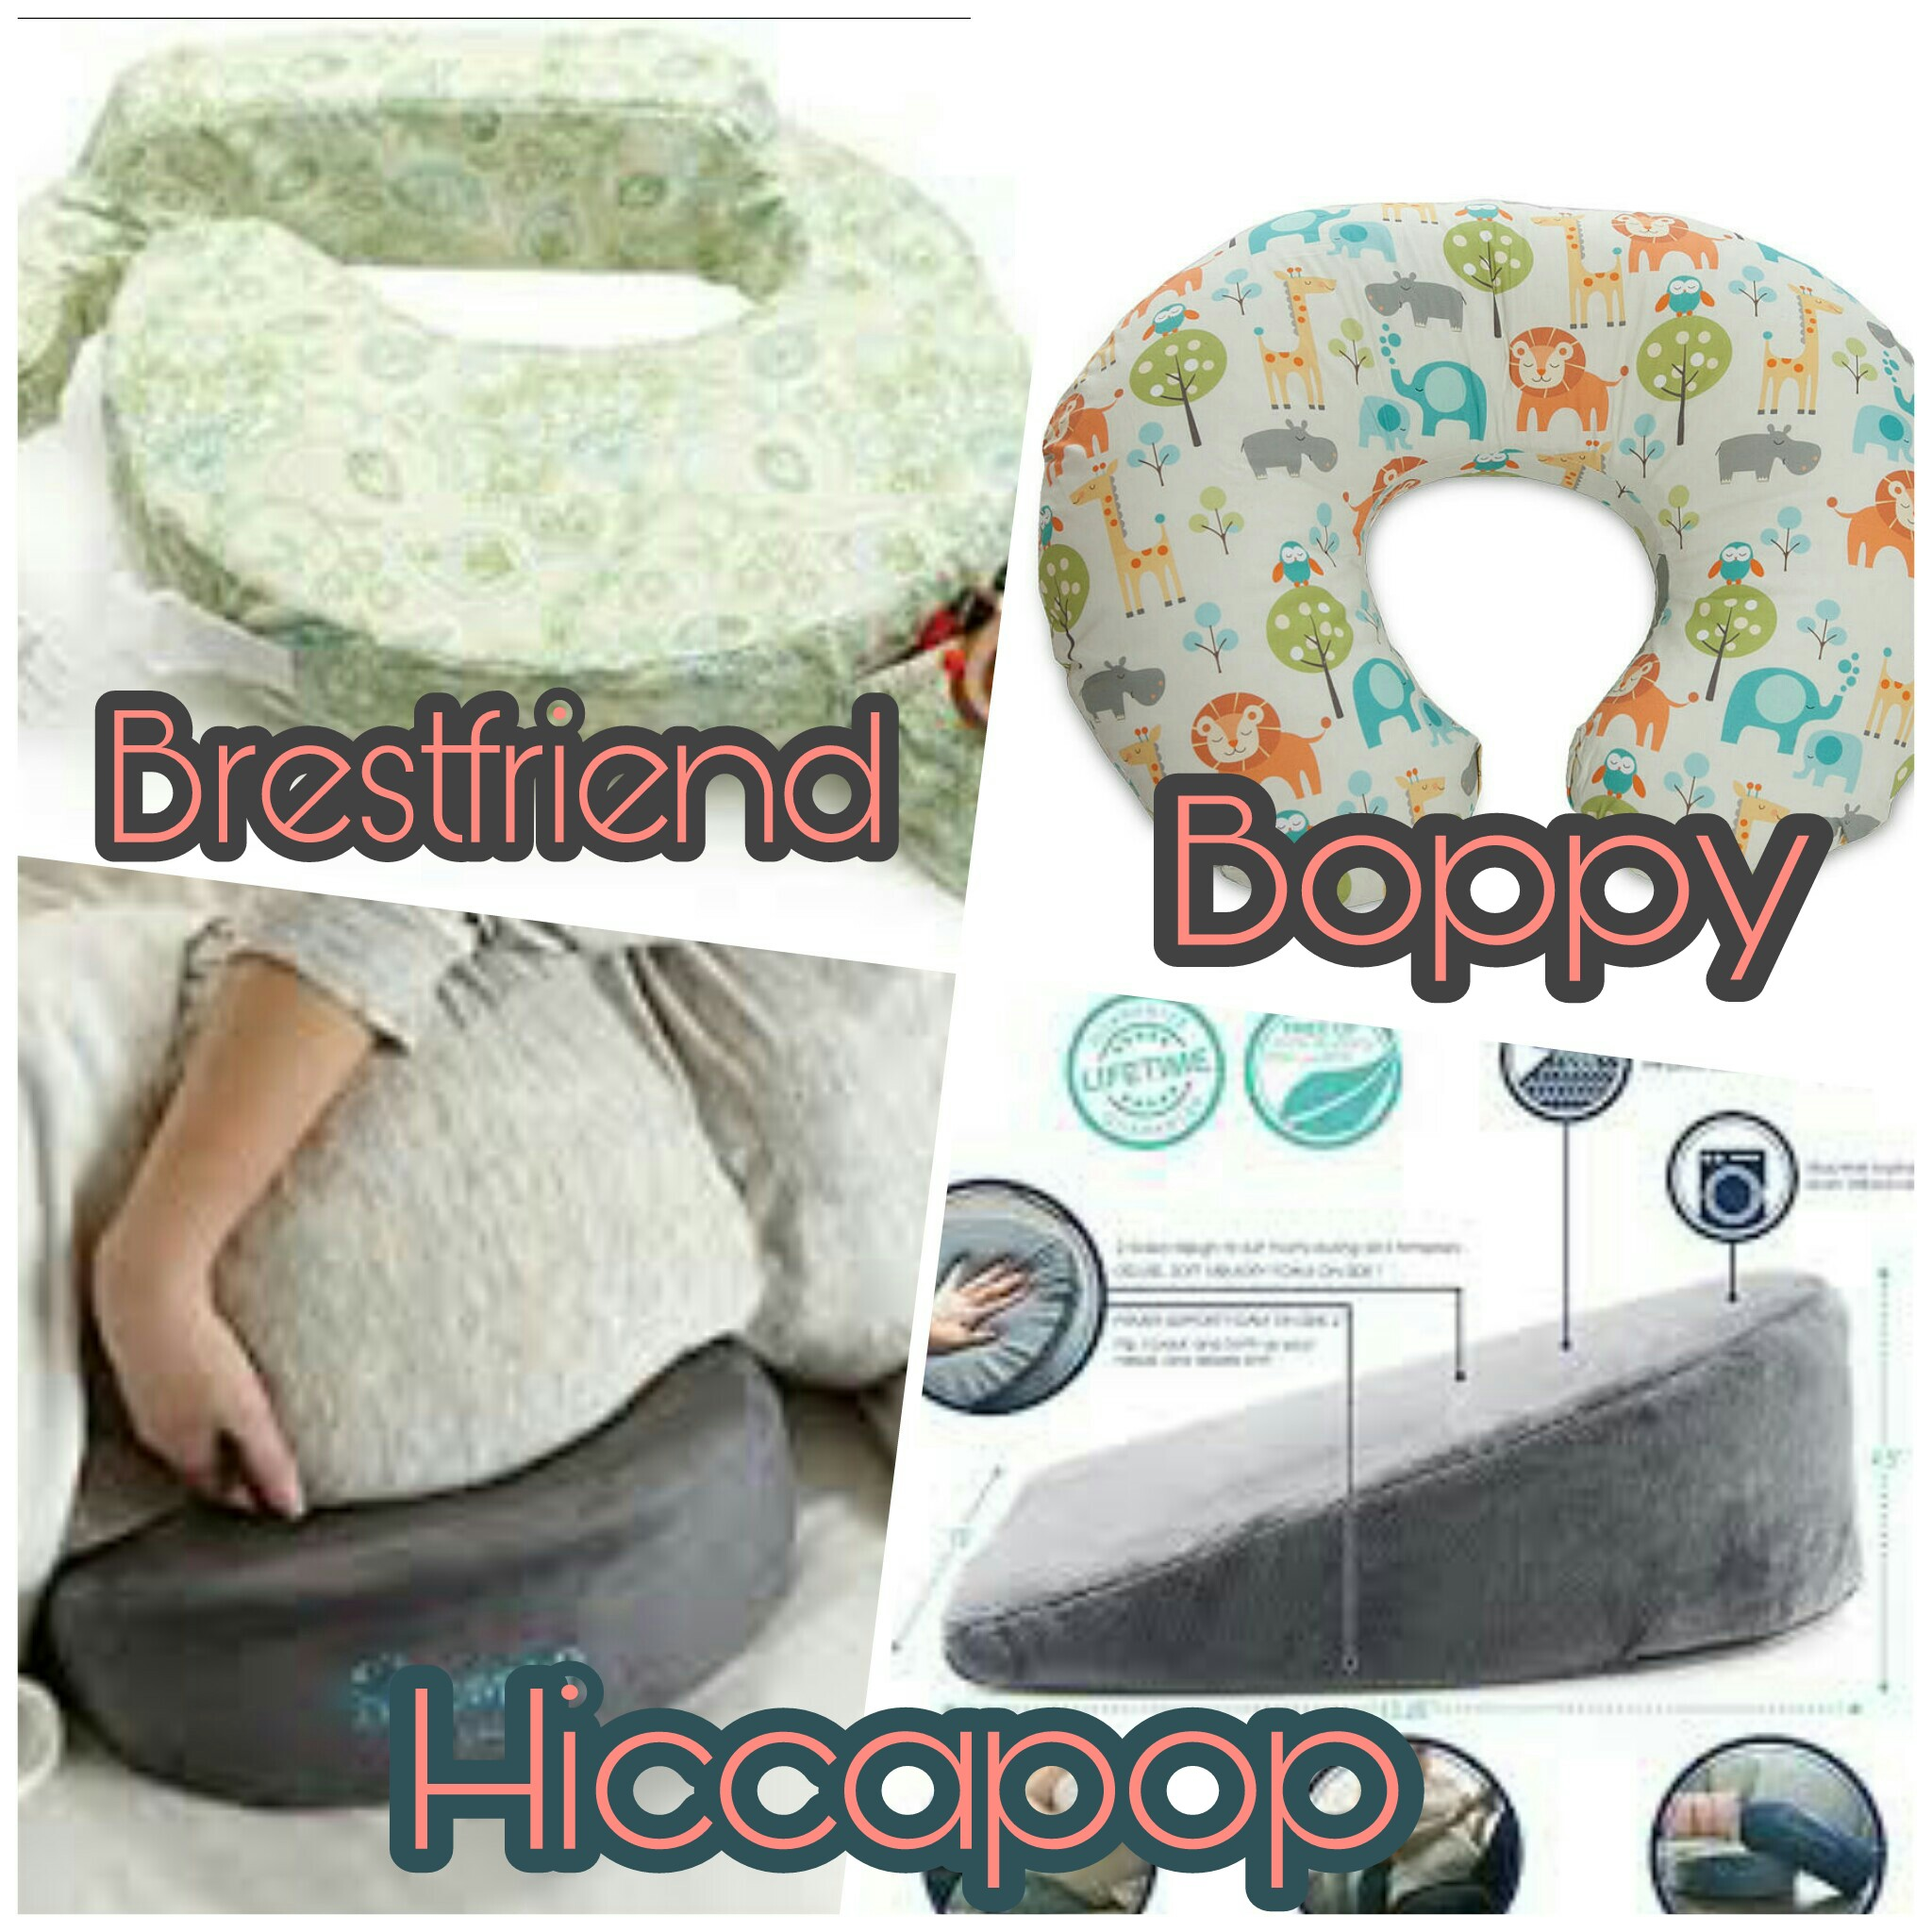 A nursing pillow will help prop baby closer to you. These all can be used for both breast and bottle feeding. The Brestfriend has a clasp that you can adjust at any point on your torso, it also has a little pocket you can fit a water bottle, a pacifier, a nipple shield, really anything you have found helpful in your feeds. I included the Hiccapop because it is an awesome edition to propping baby higher, I personally use it on my lap under baby for bottle feeds. It allows for me to sit up straight and props up baby on an angle for feeds. This is really for pregnancy prior to baby's arrival, but I recommend as another full circle tool for both parent and baby.